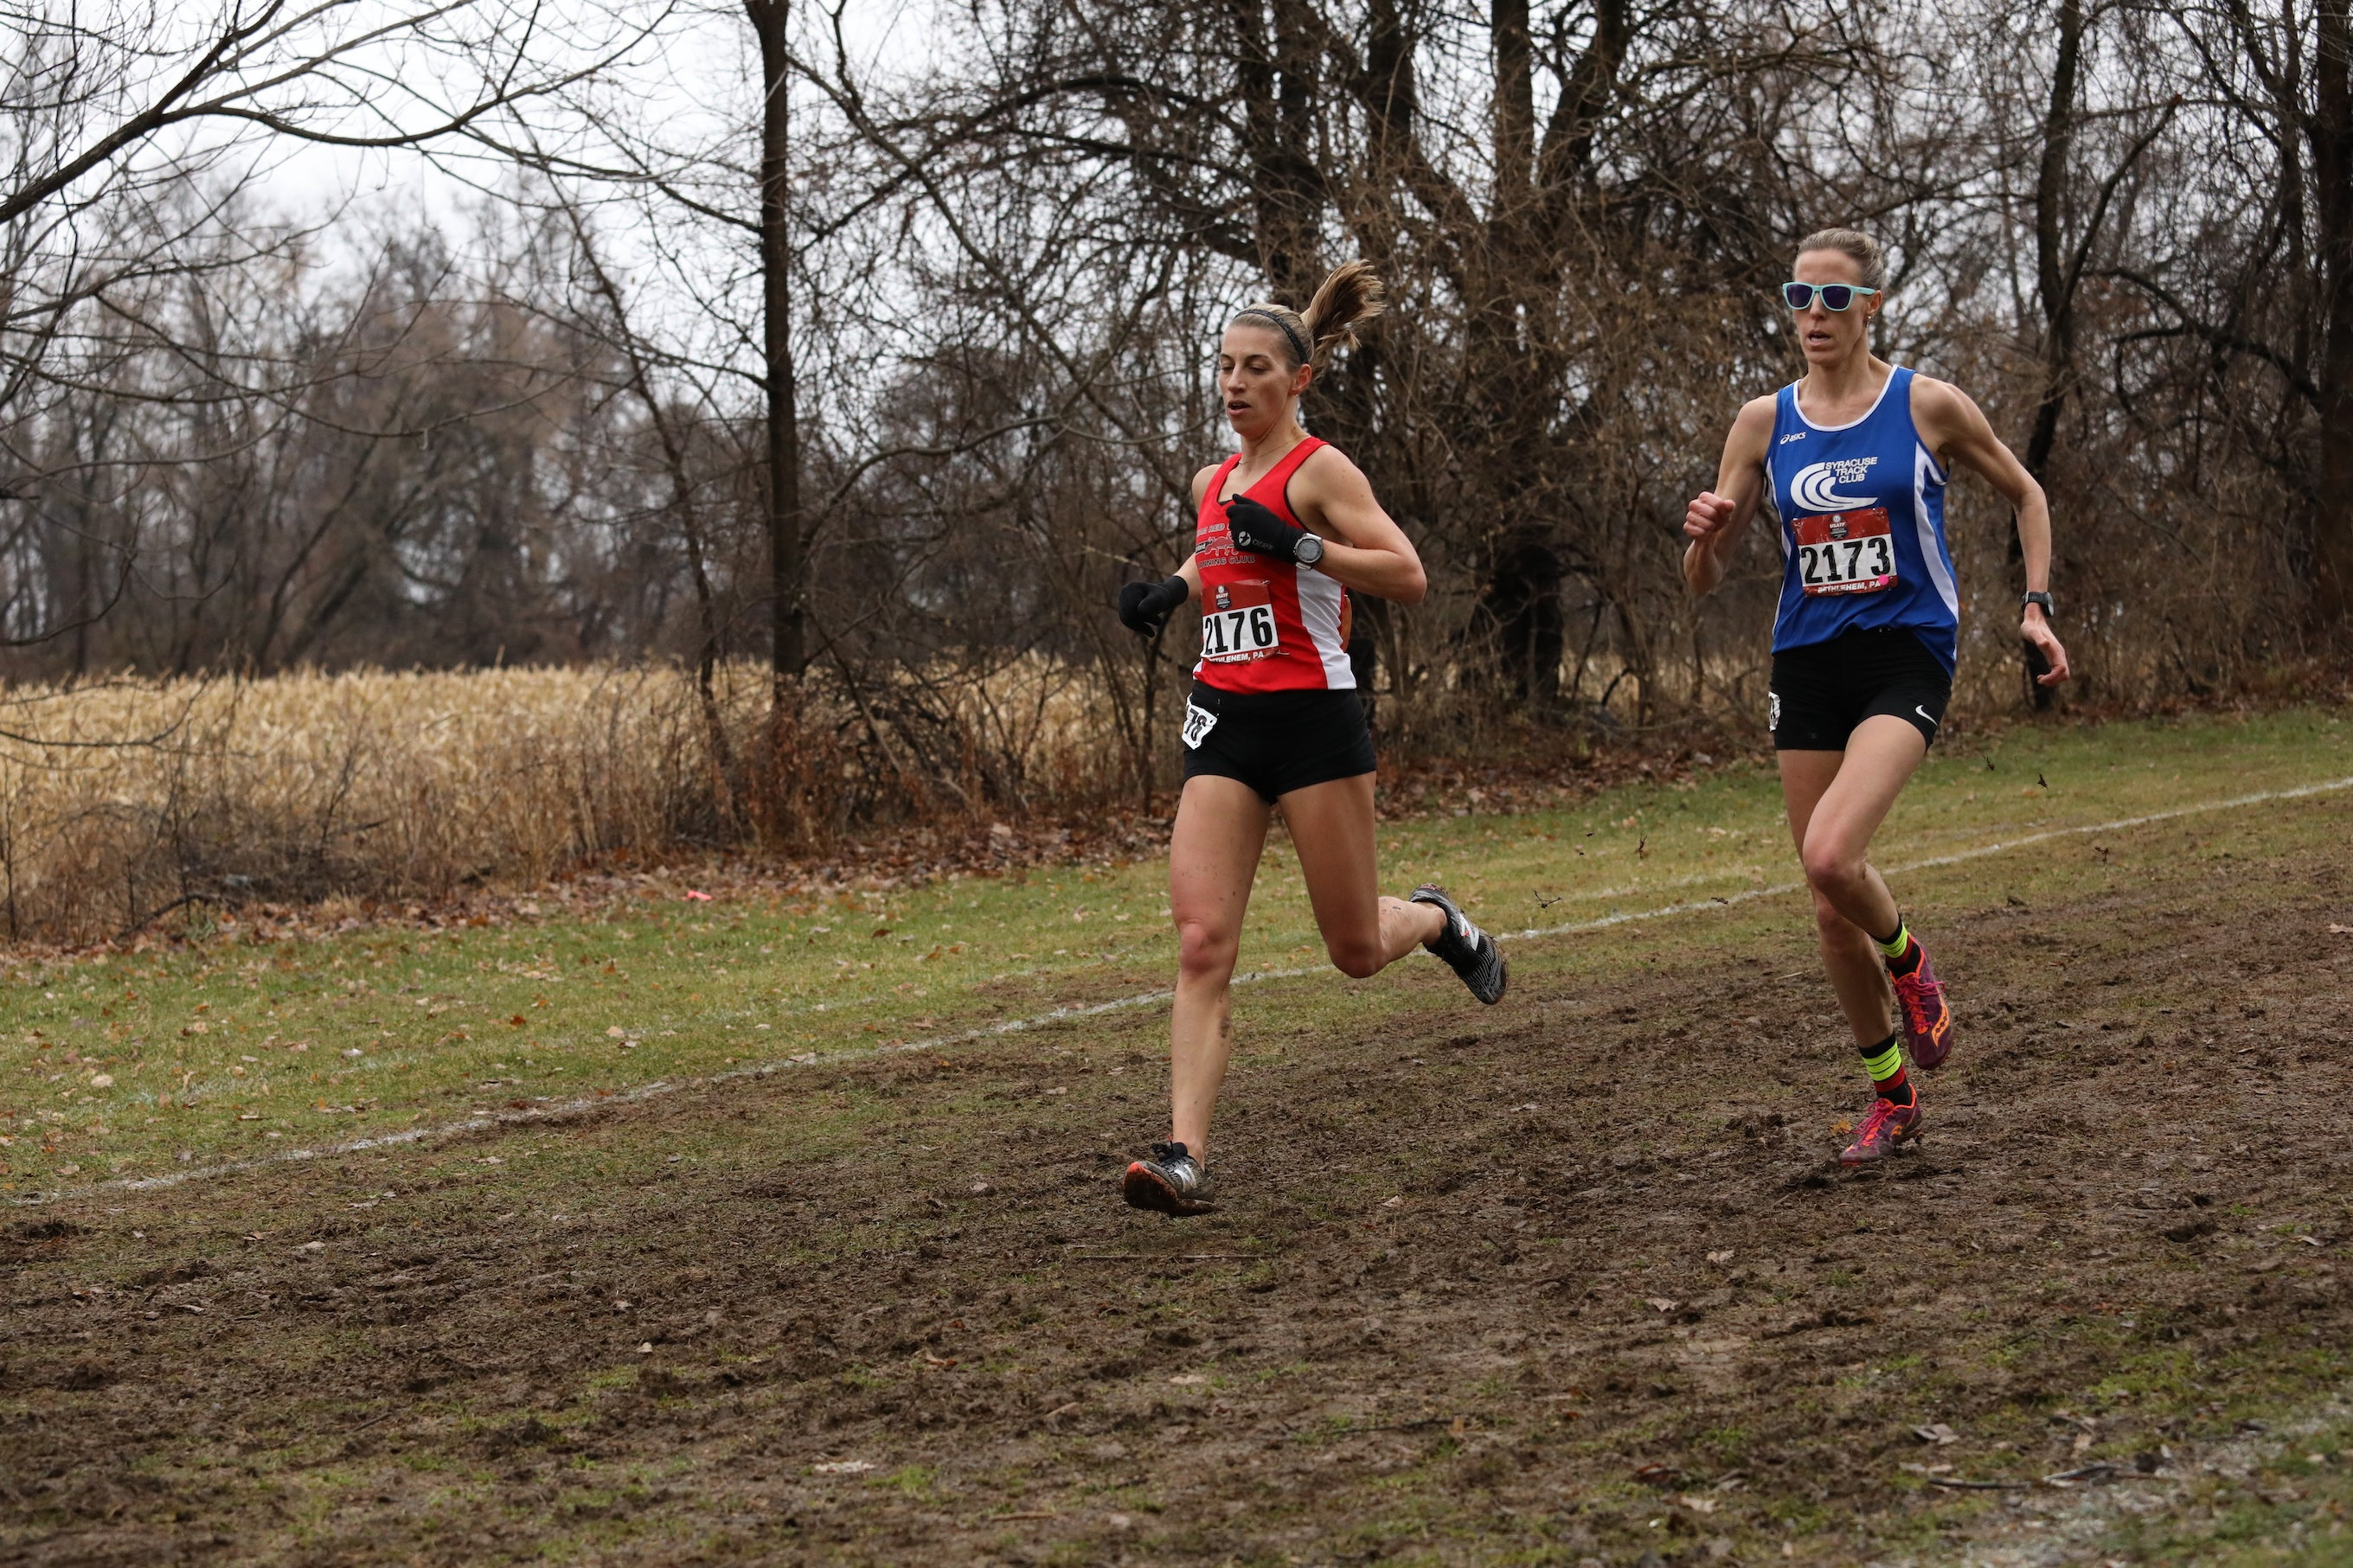 Eventual 2019 USATF Club Cross Country Championships masters division winner Sascha Scott of Syracuse battles through the mud against Casey Hire, 40, from Team Red Lizard, who placed fourth.